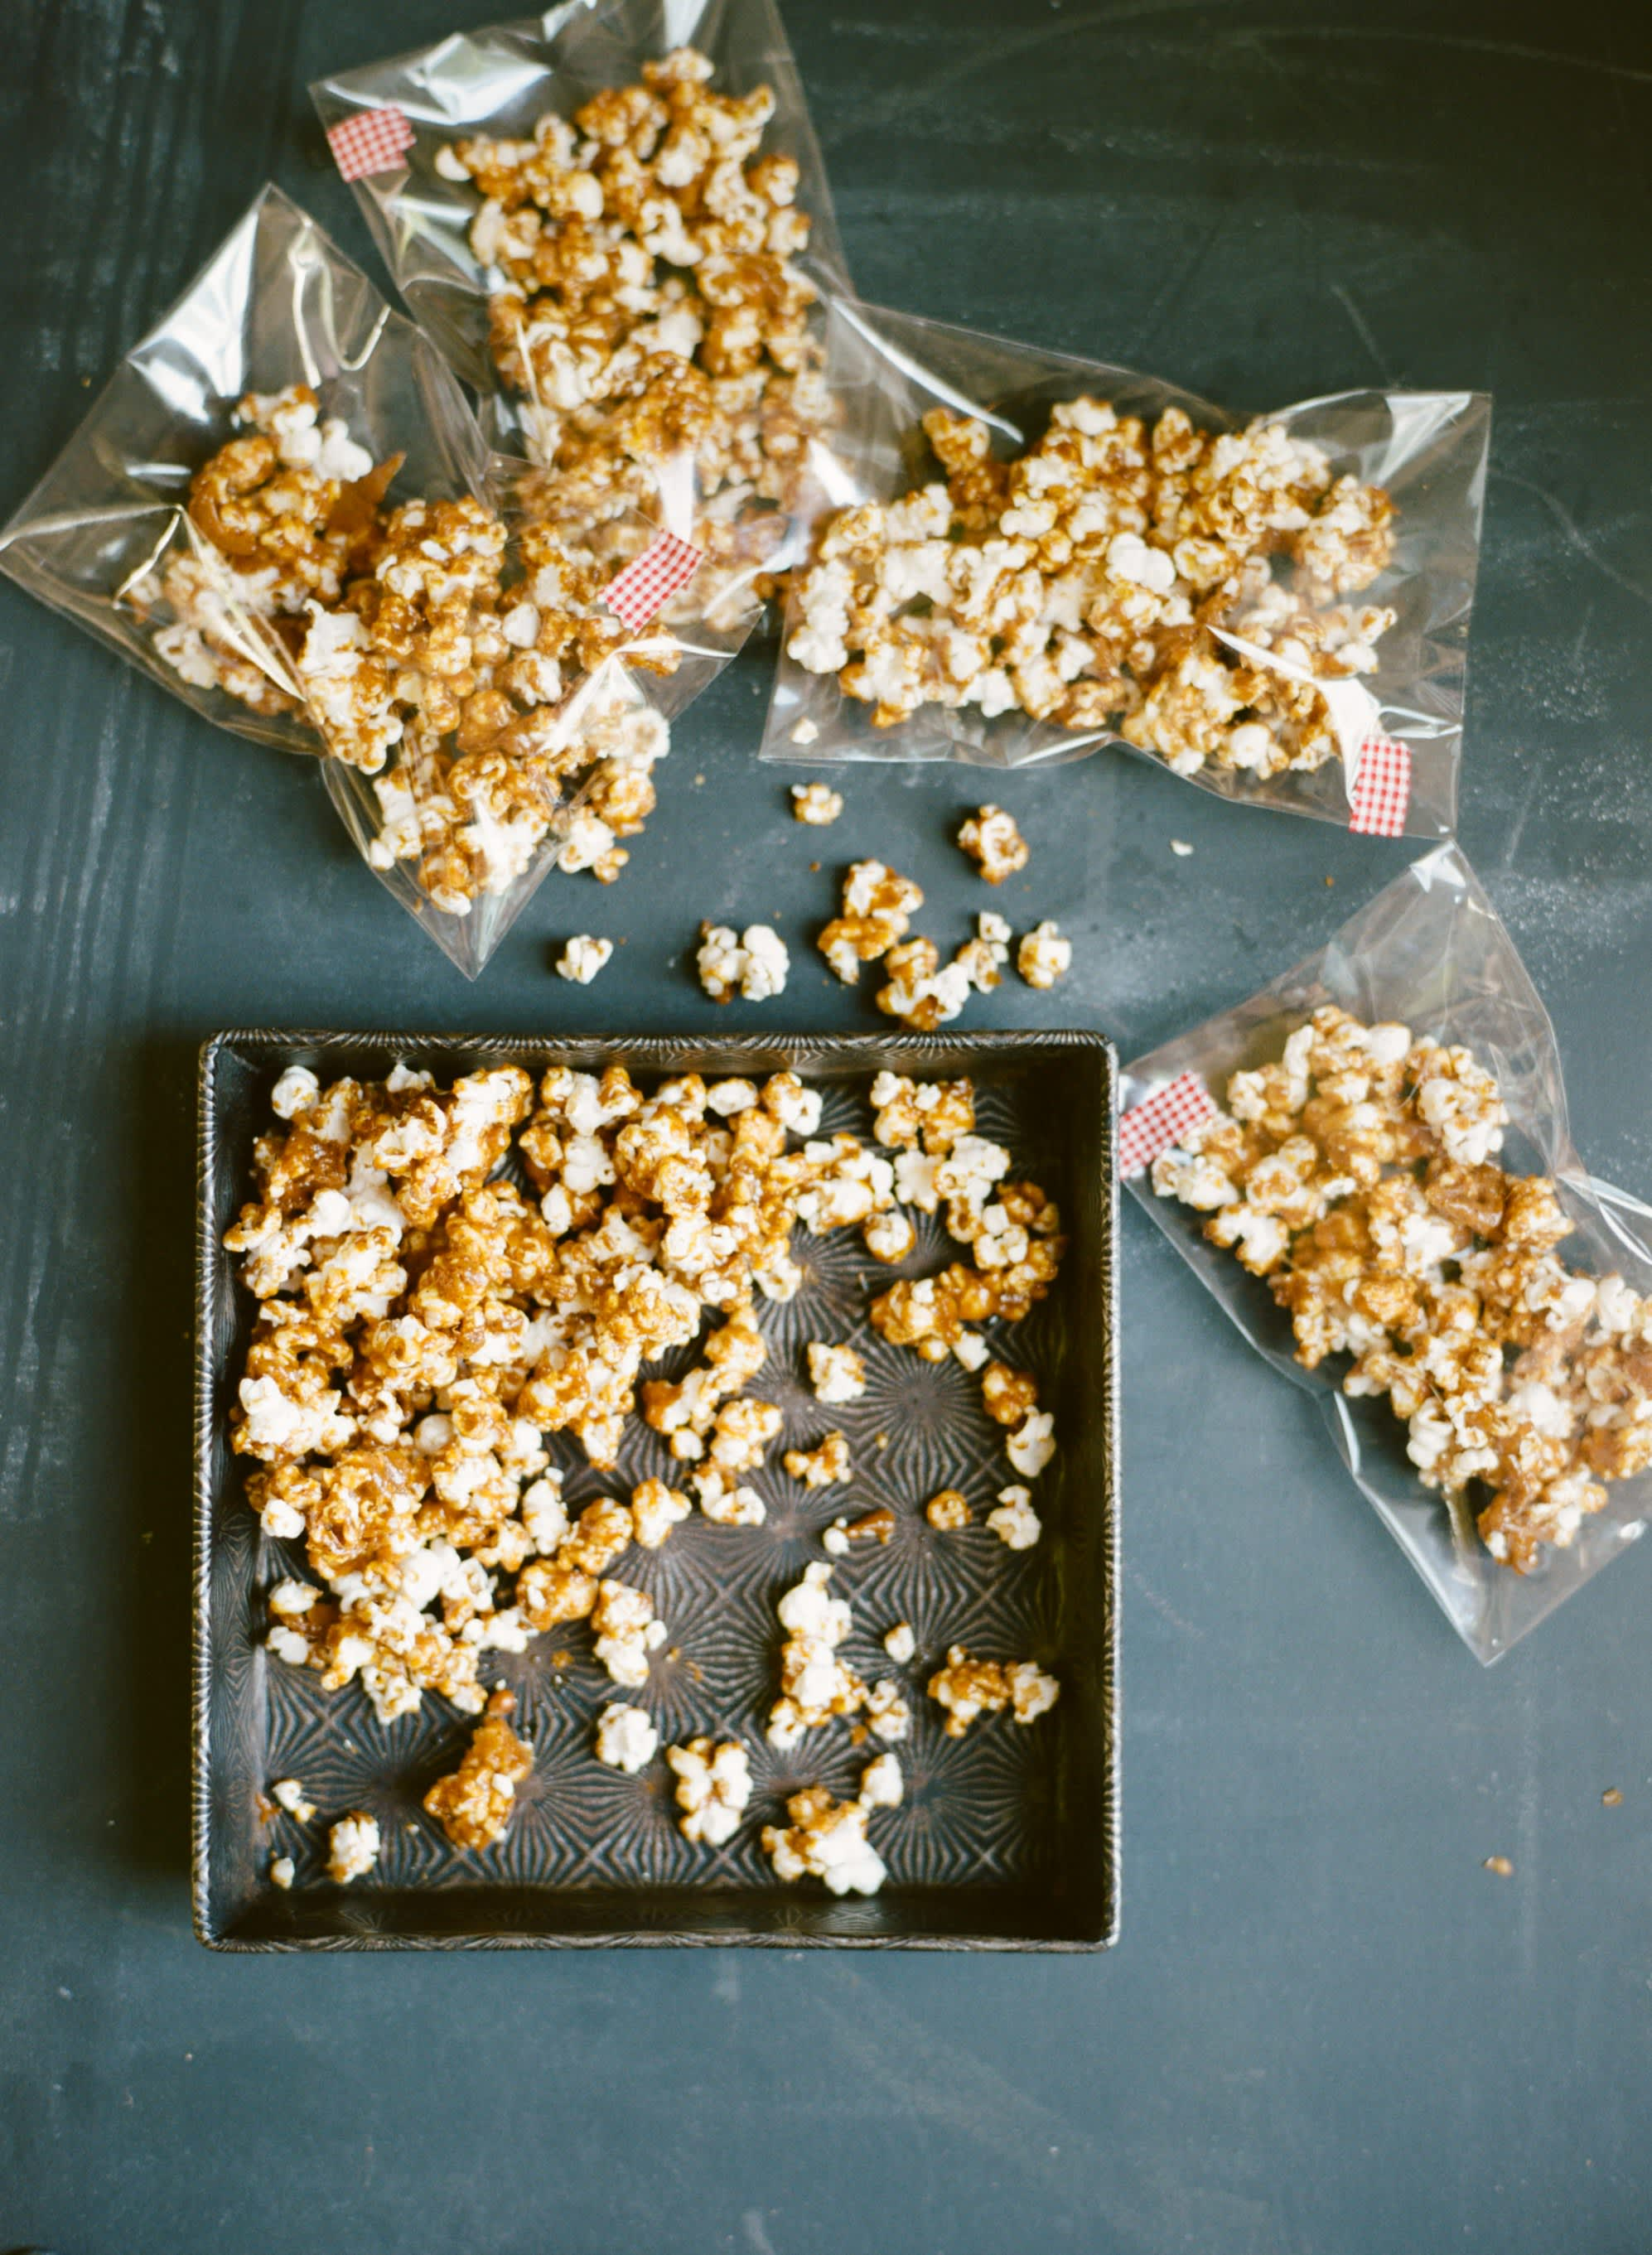 Smoky Candied Popcorn